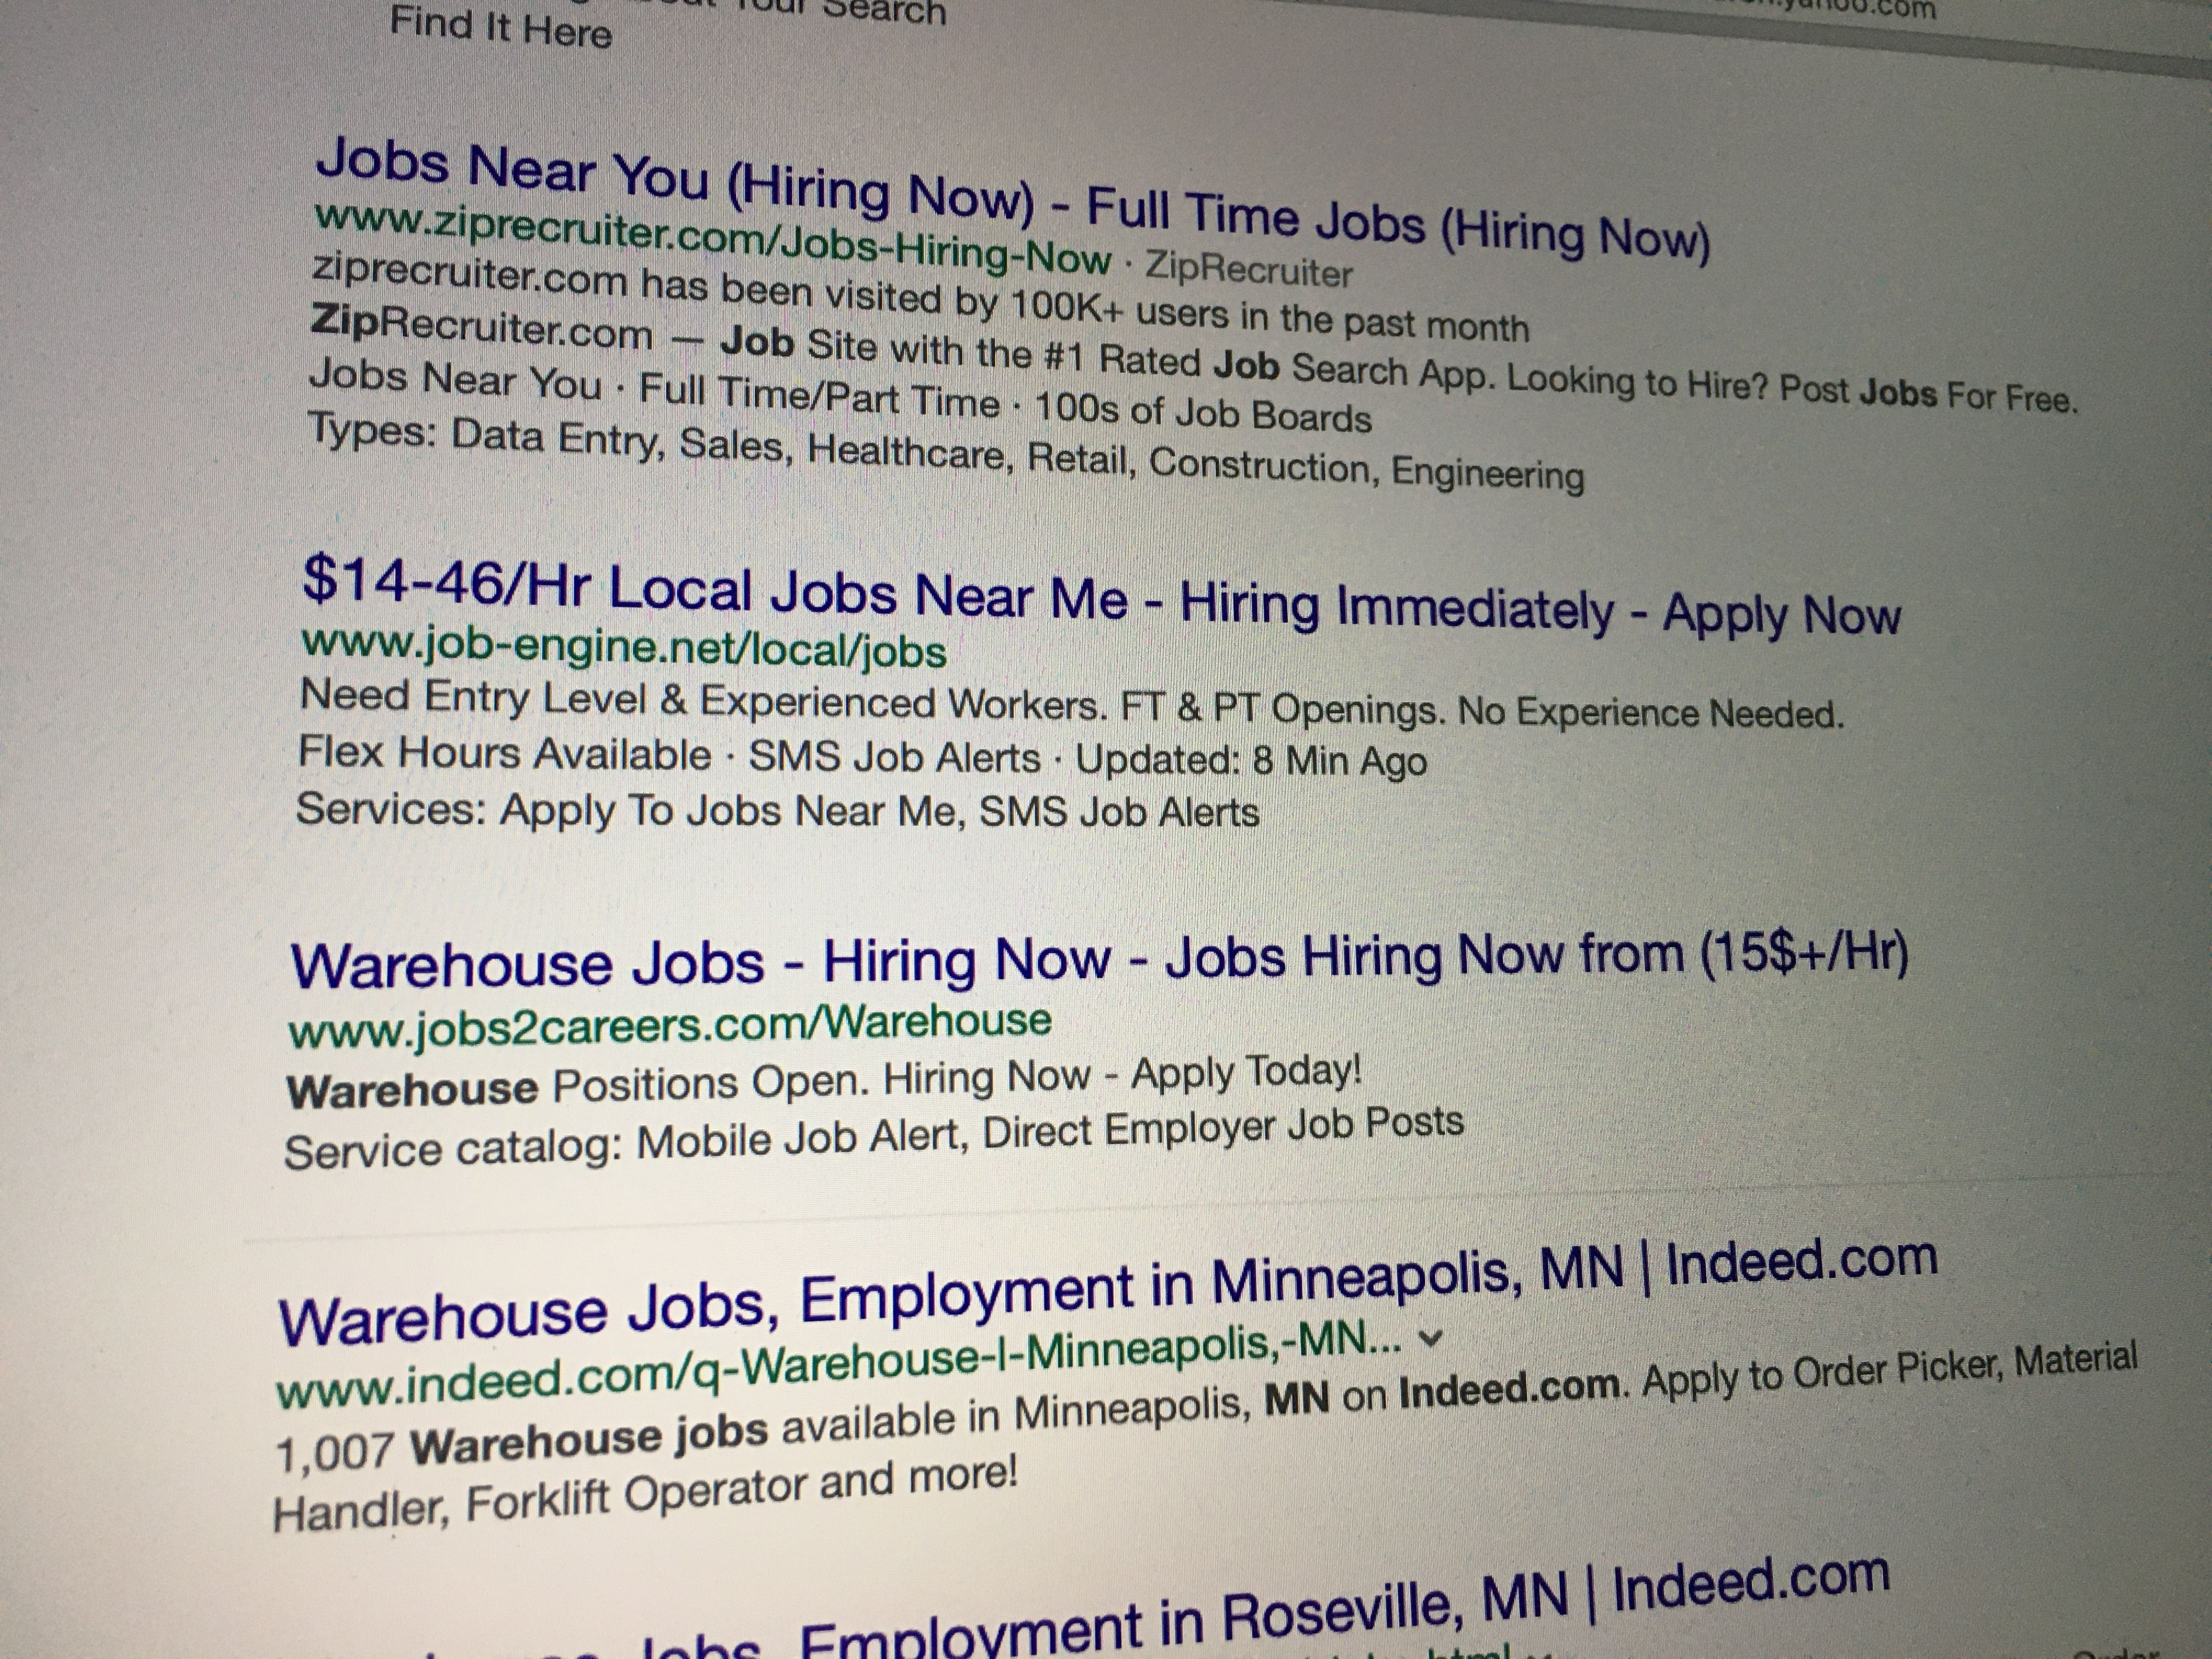 Pin By Laurie Wilcox On Spouse Job Search Jobs Hiring Hiring Now